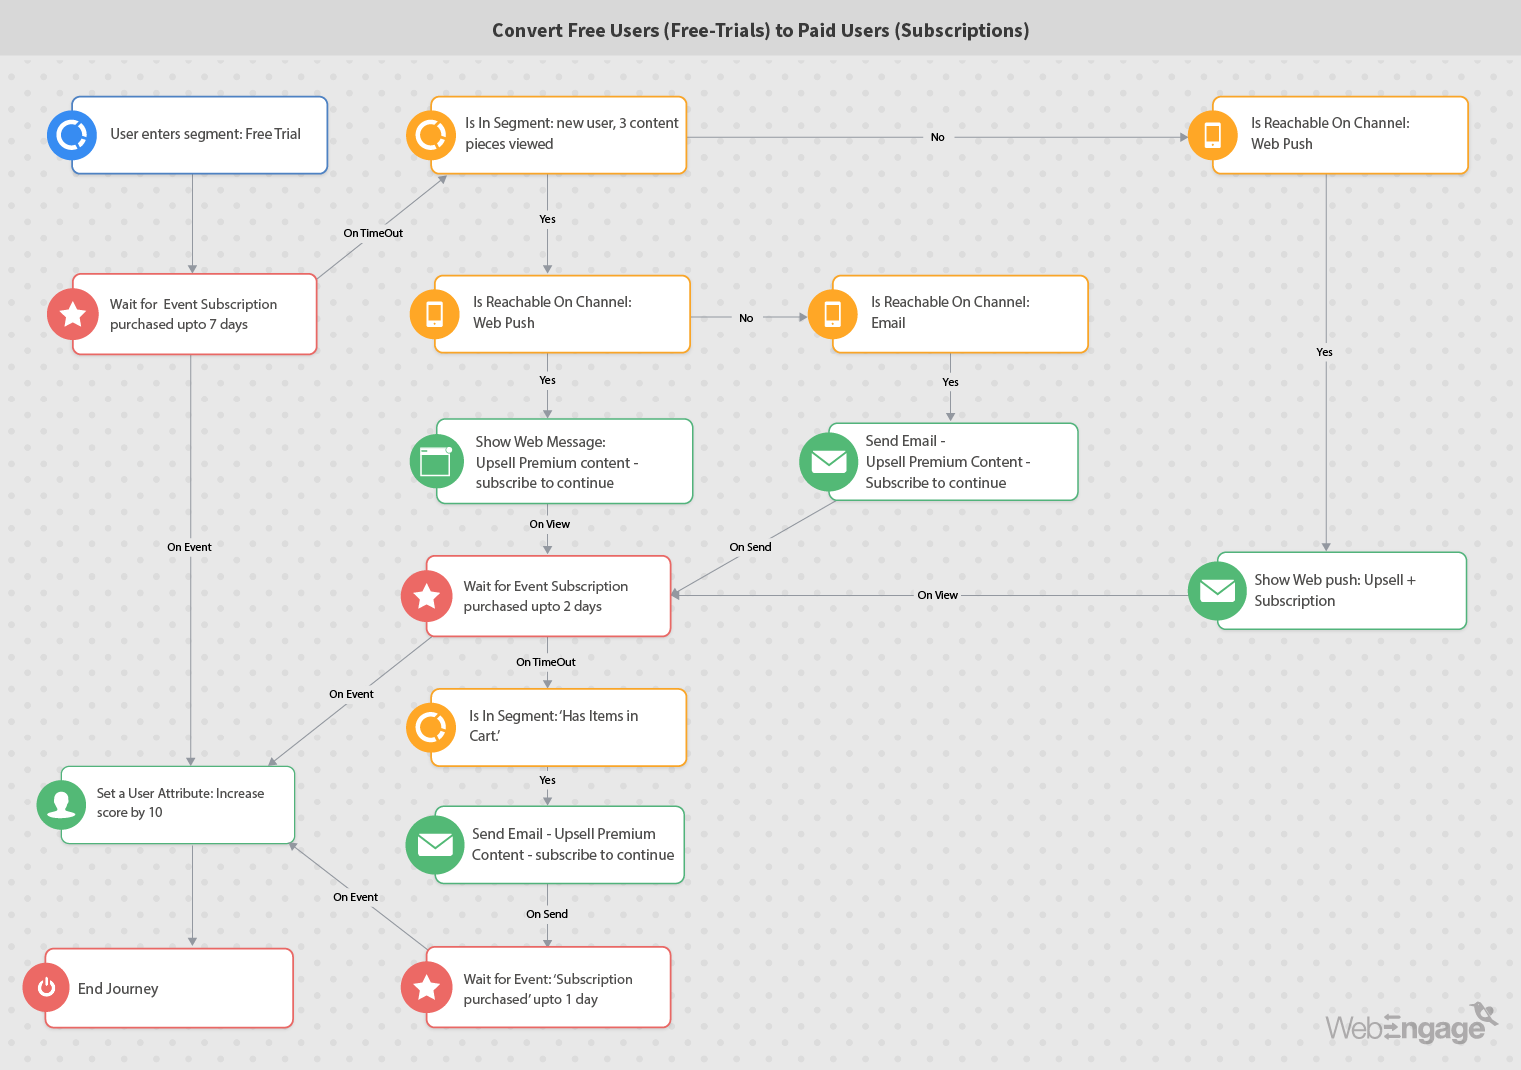 Marketing automation workflow for converting free users to paid users